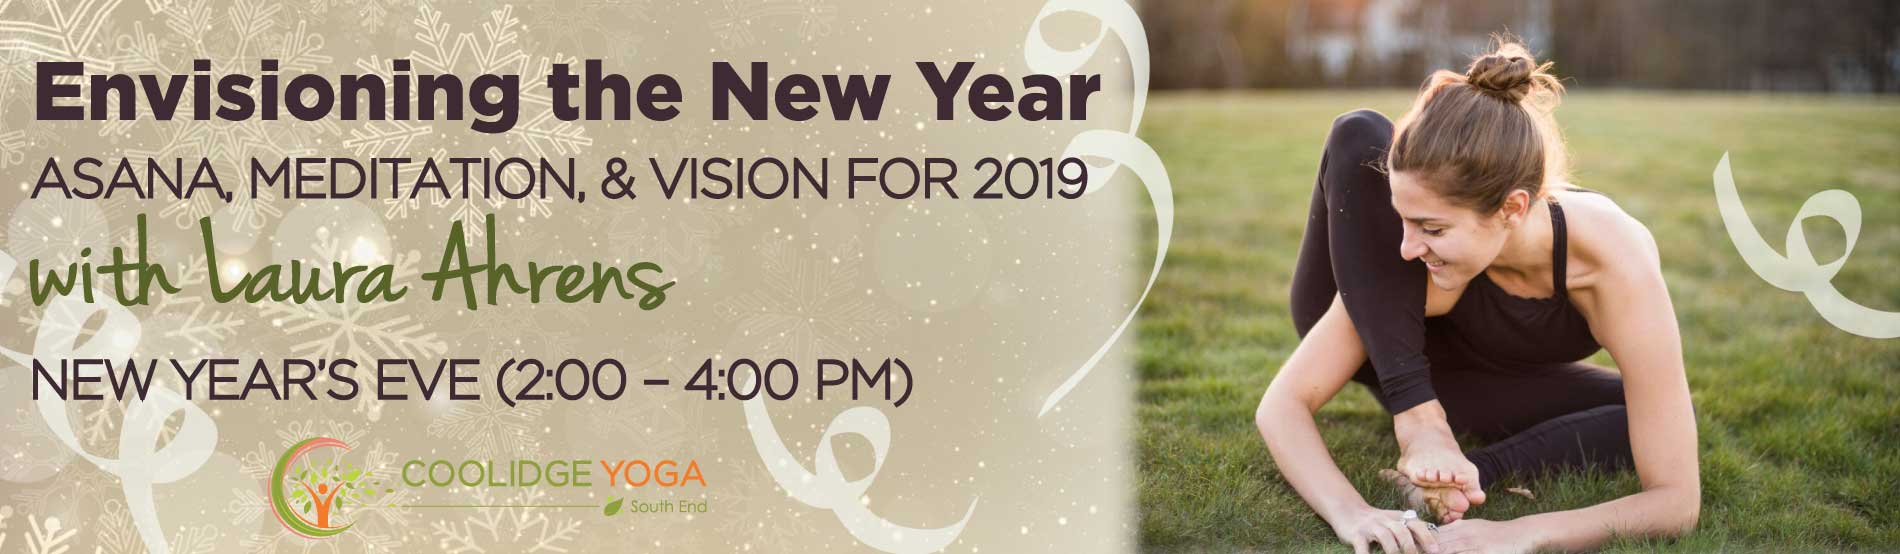 Envisioning the New Year with Laura Ahrens at Coolidge Yoga